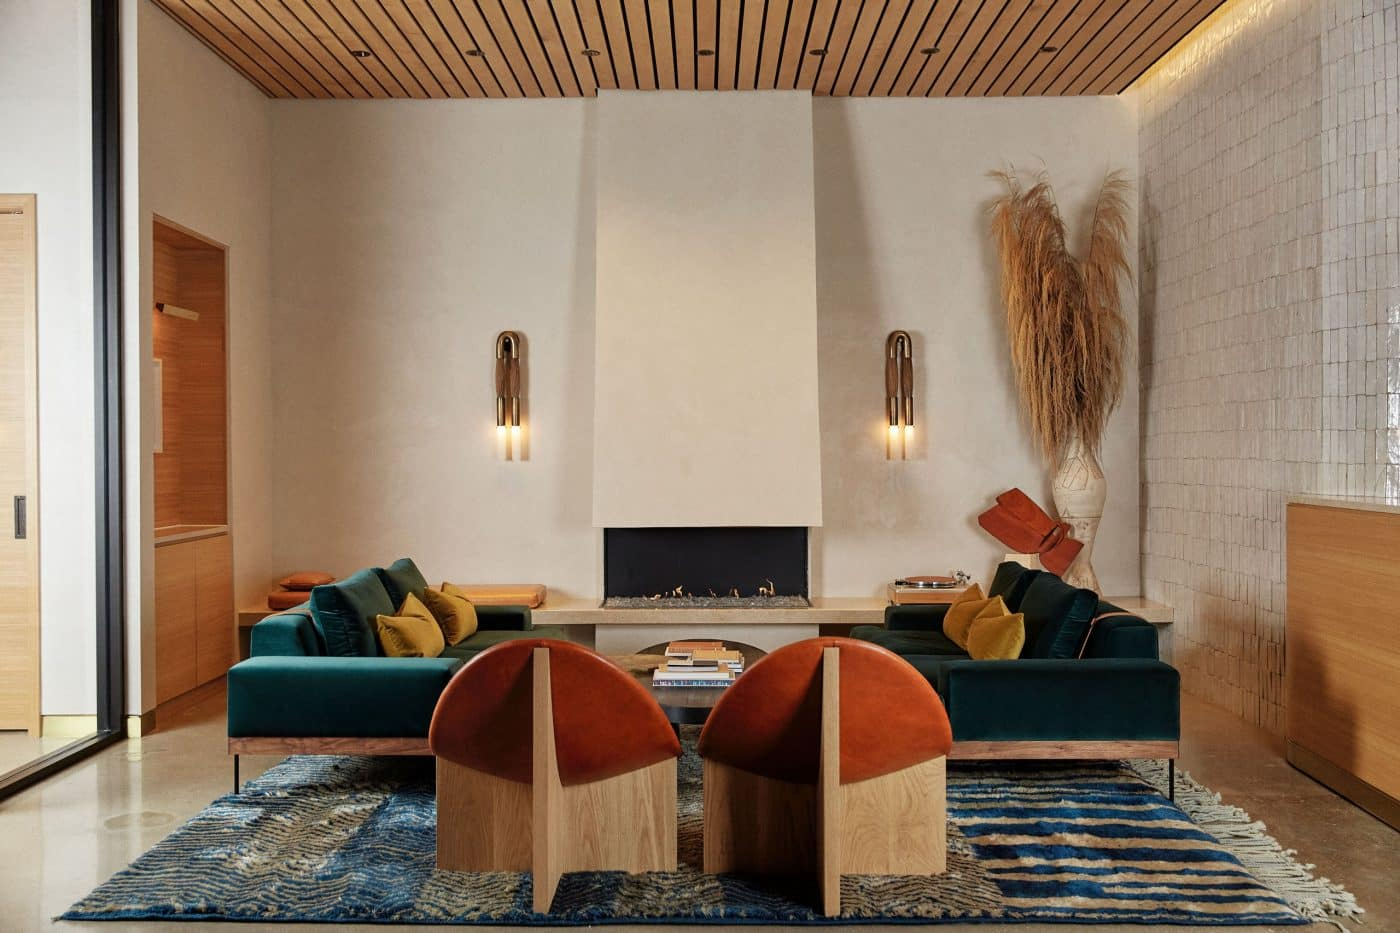 W Residences lobby in Dallas, designed by Swoon, the Studio